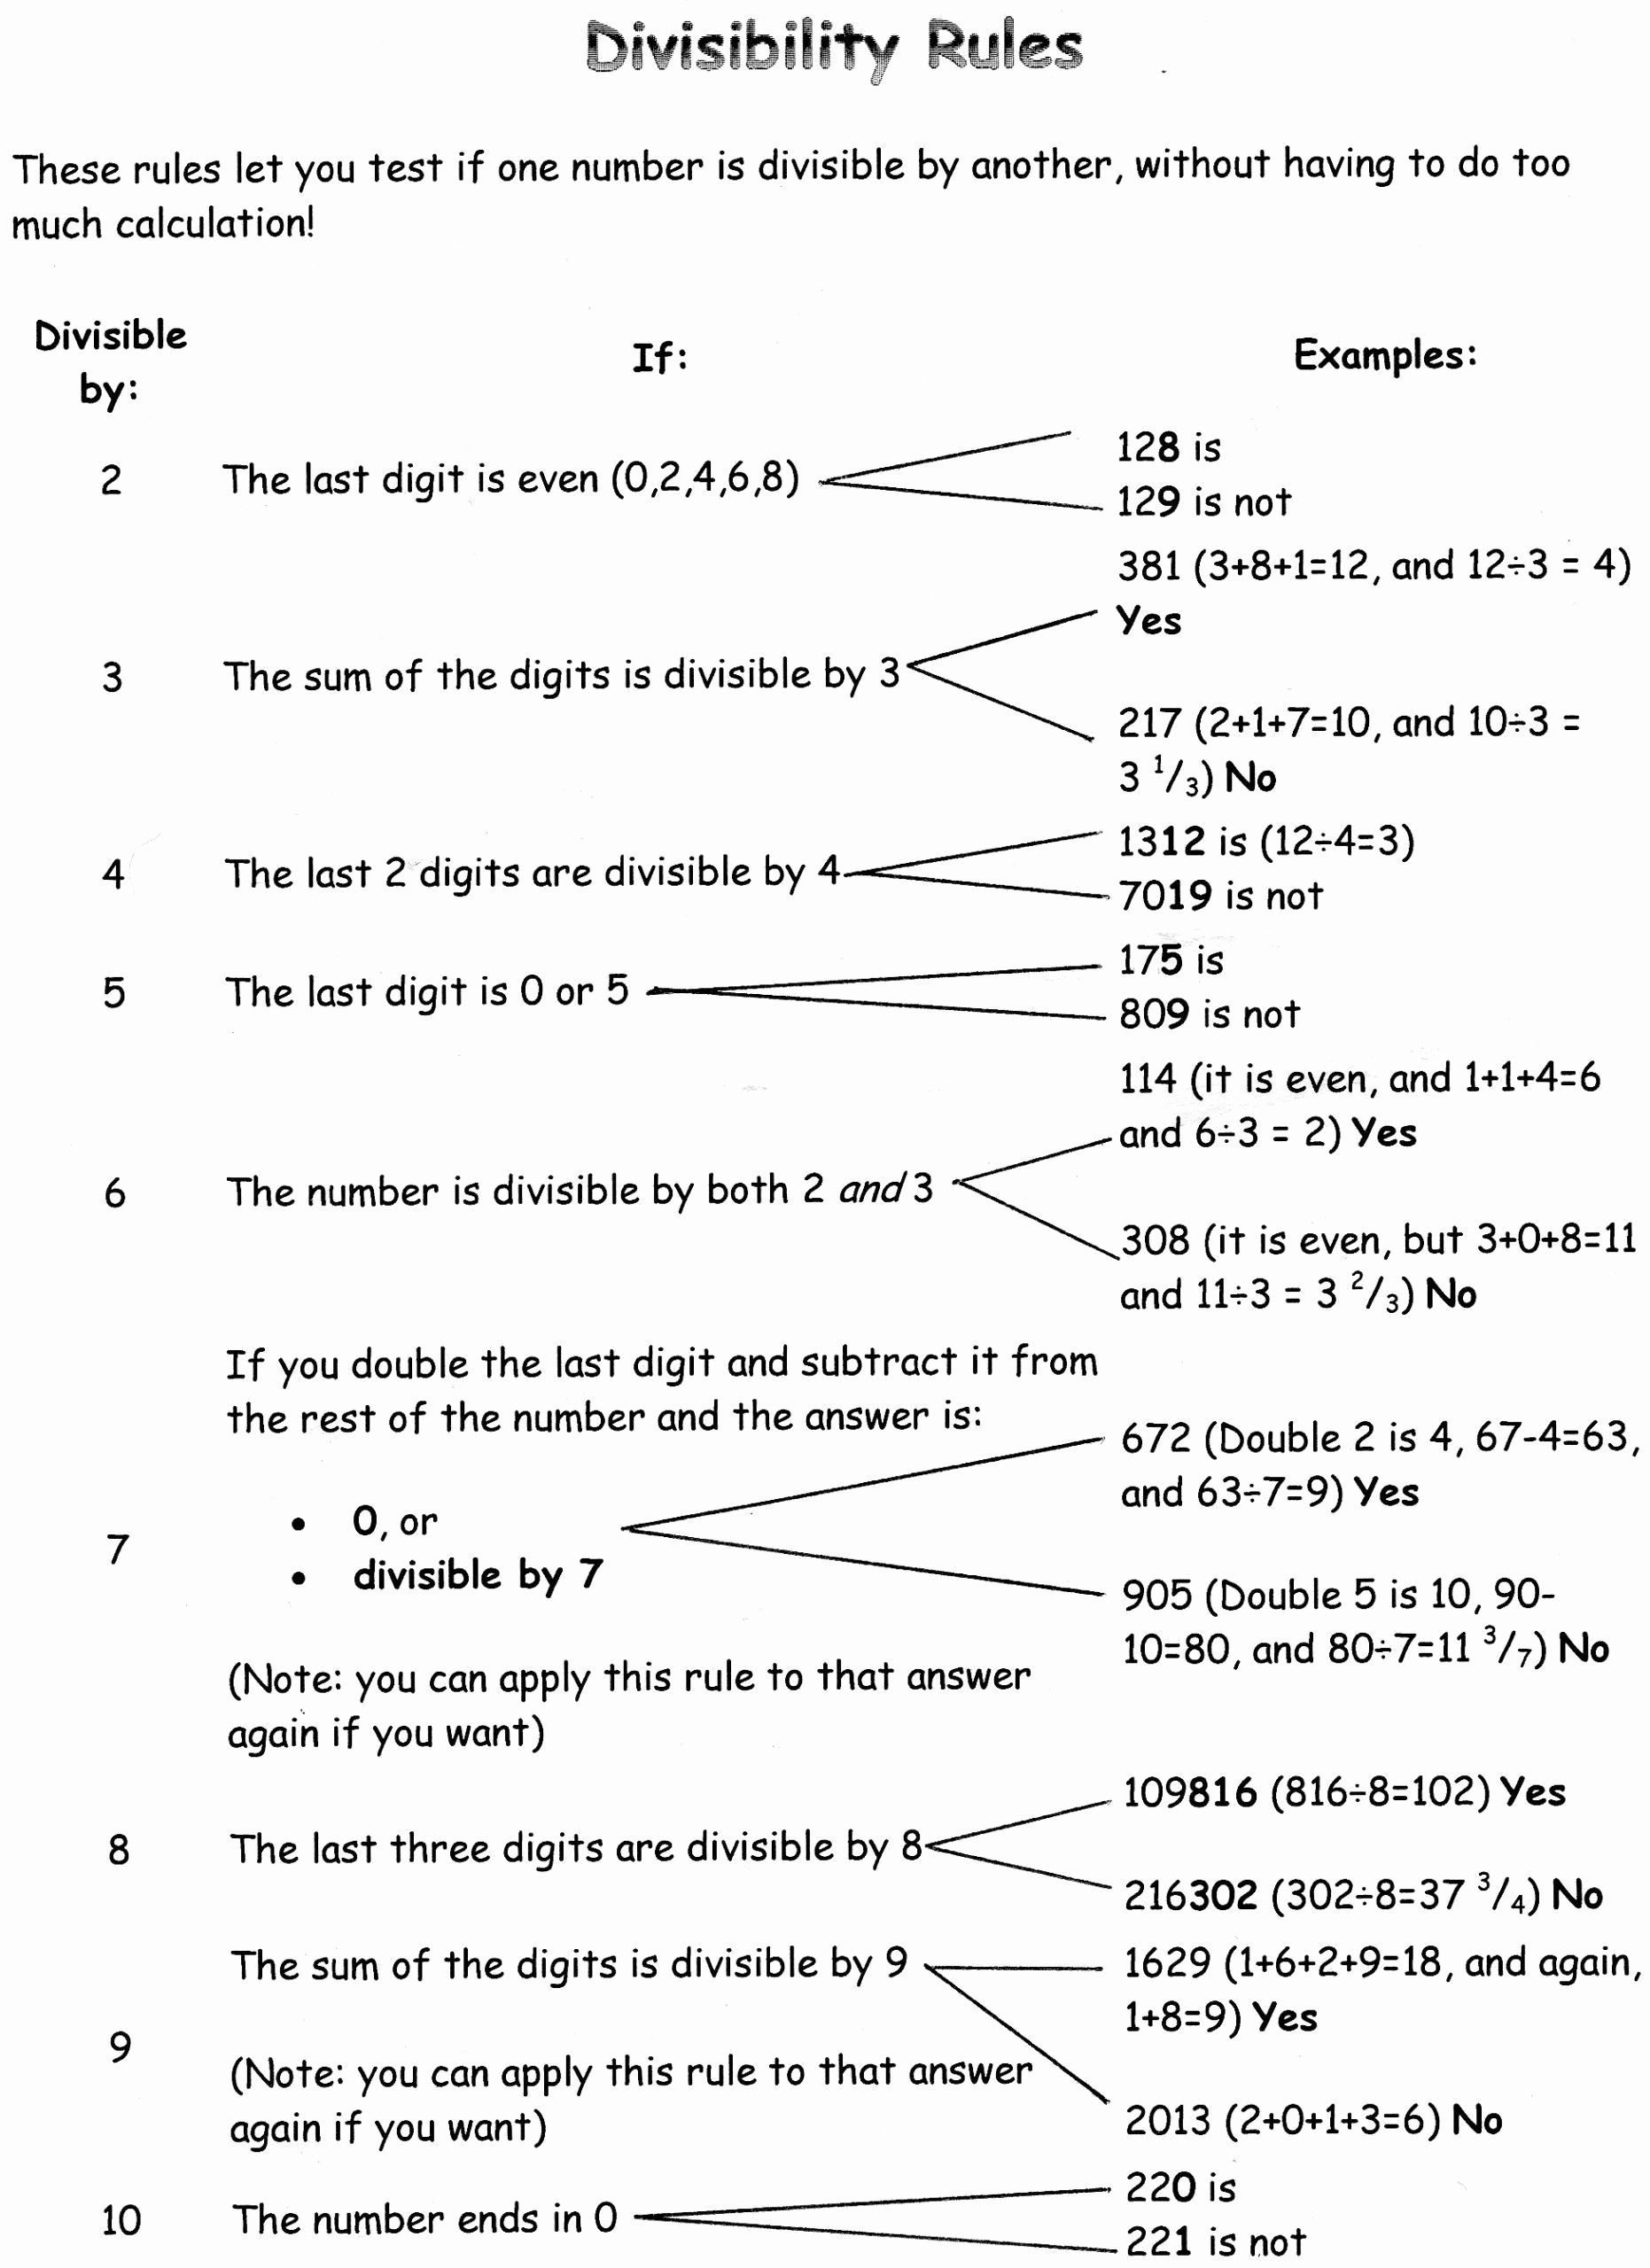 Divisibility Rules Worksheet 6th Grade Kids Divisibility Rules Worksheet 6th Grade Essay About